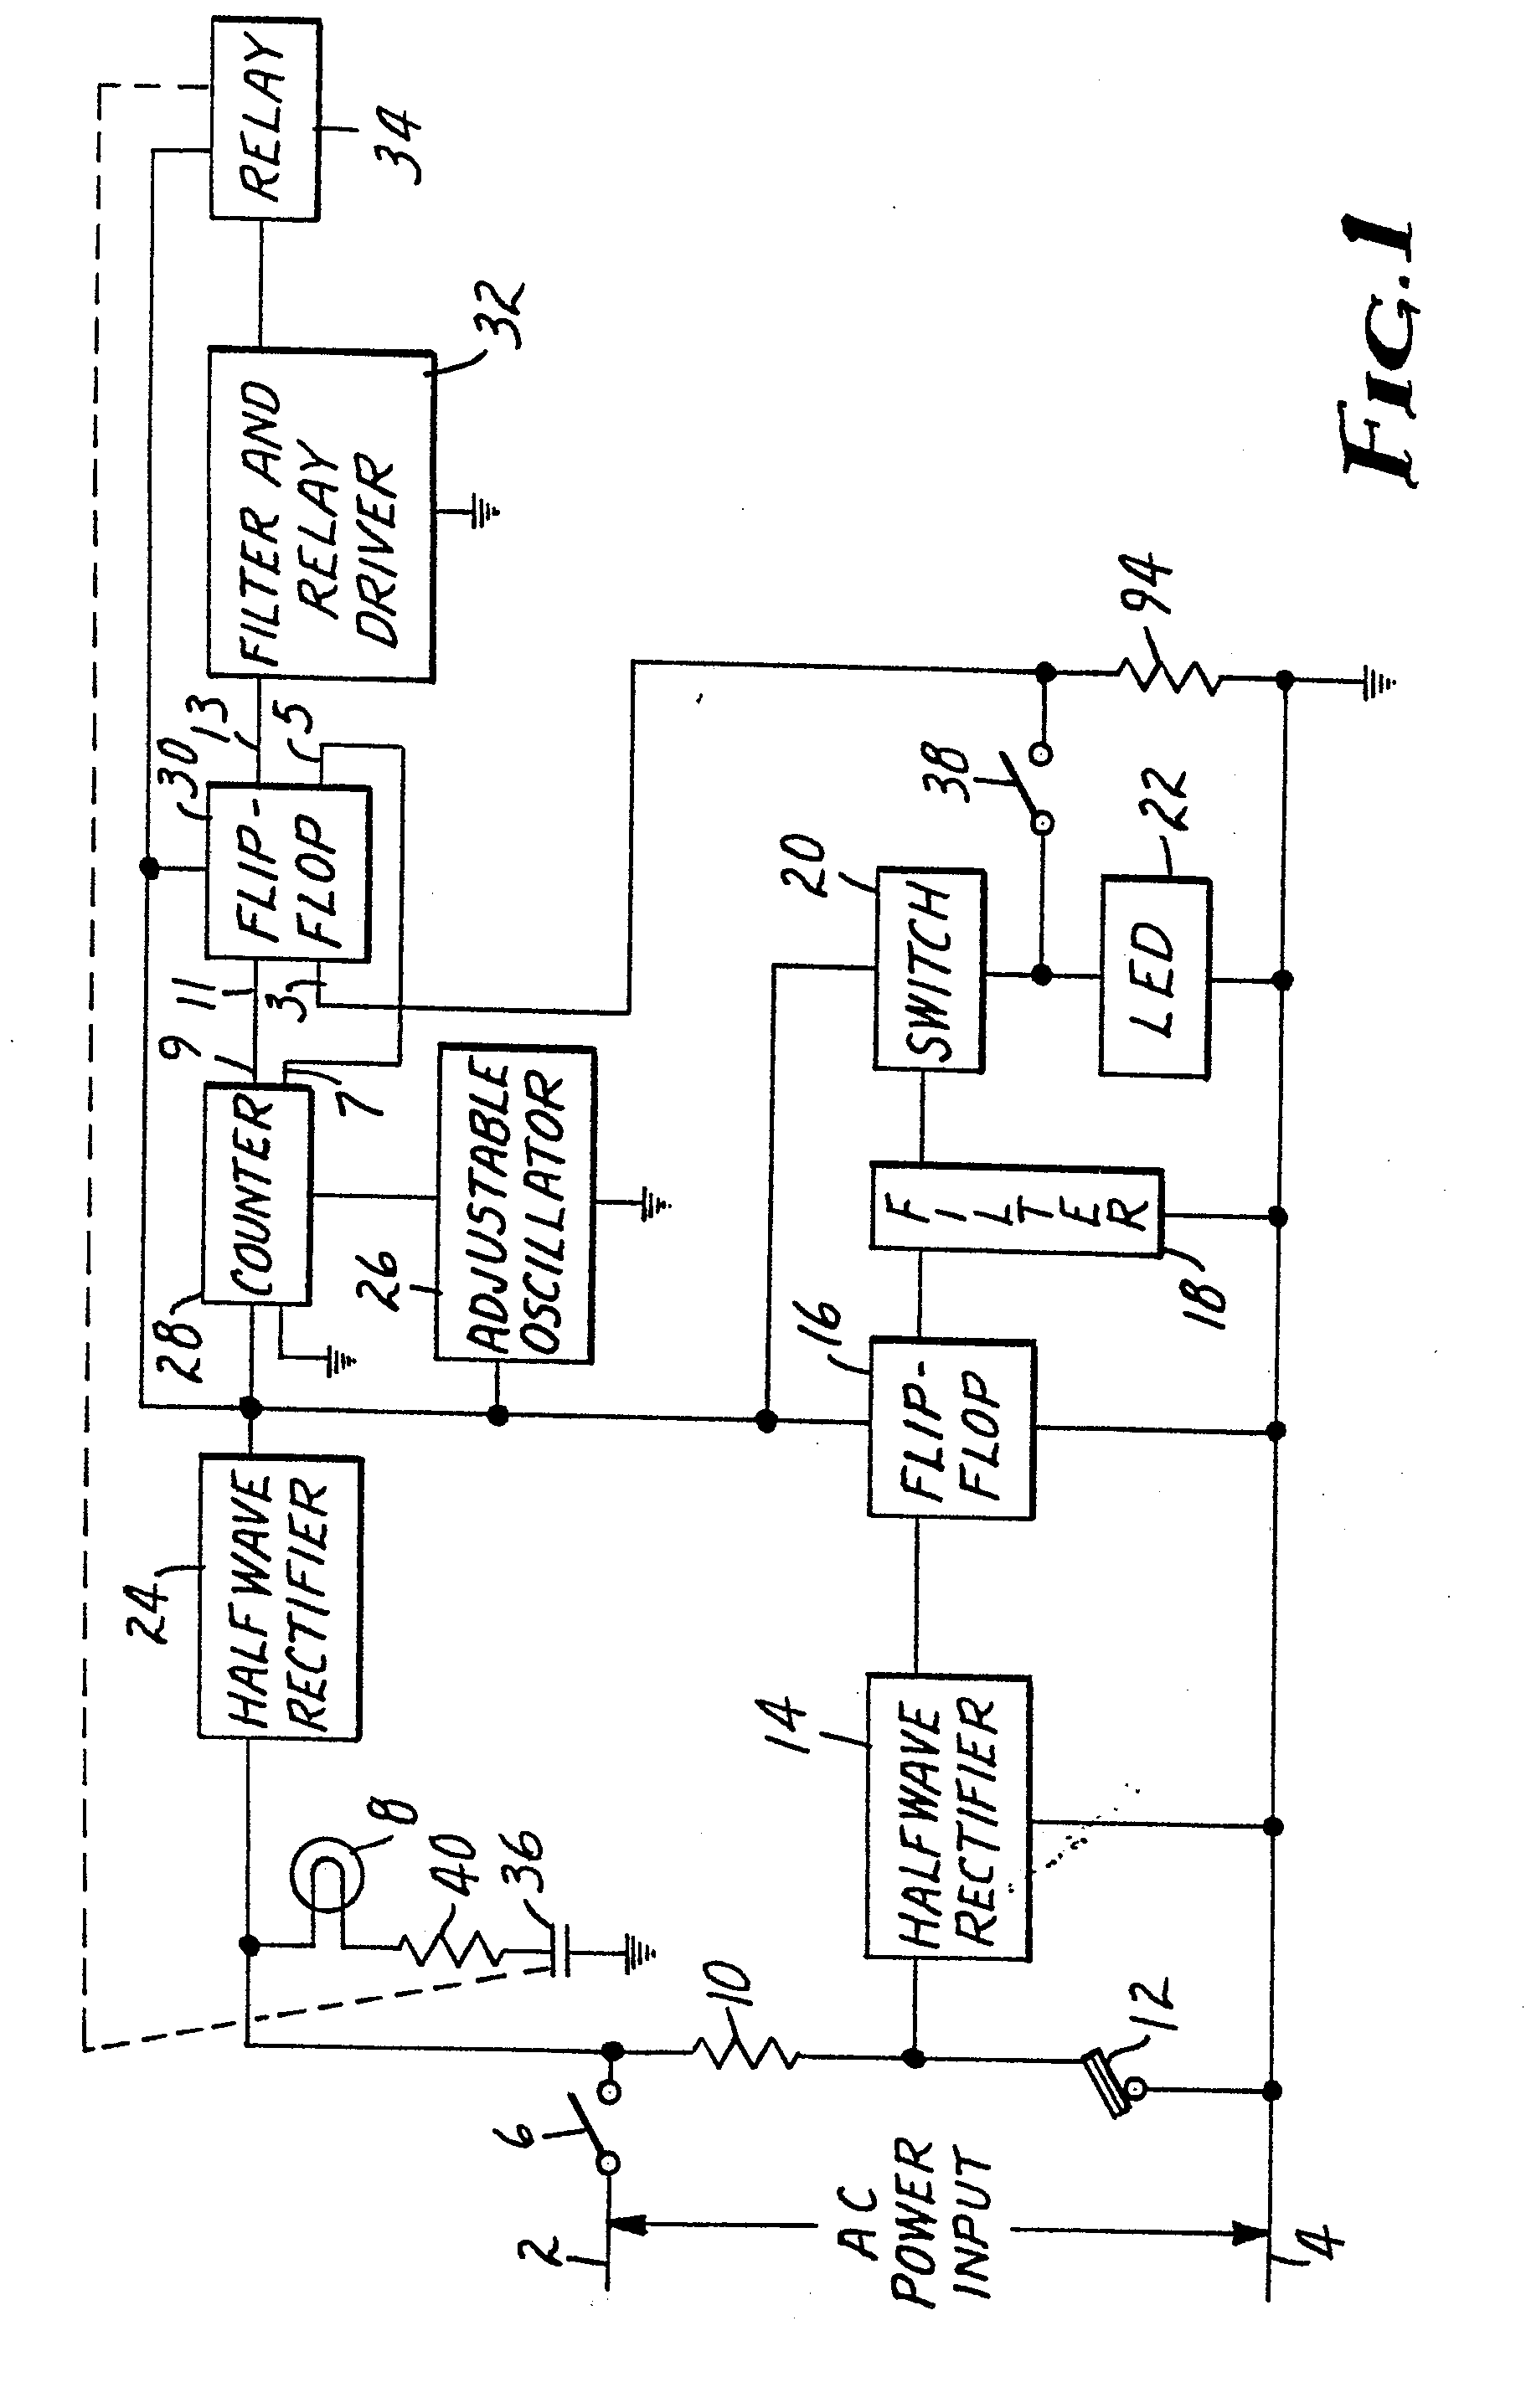 Ep0132160a2 Electrophotographic Copy Machine Having Halfwave Rectifier Circuit Diagram Patent Drawing